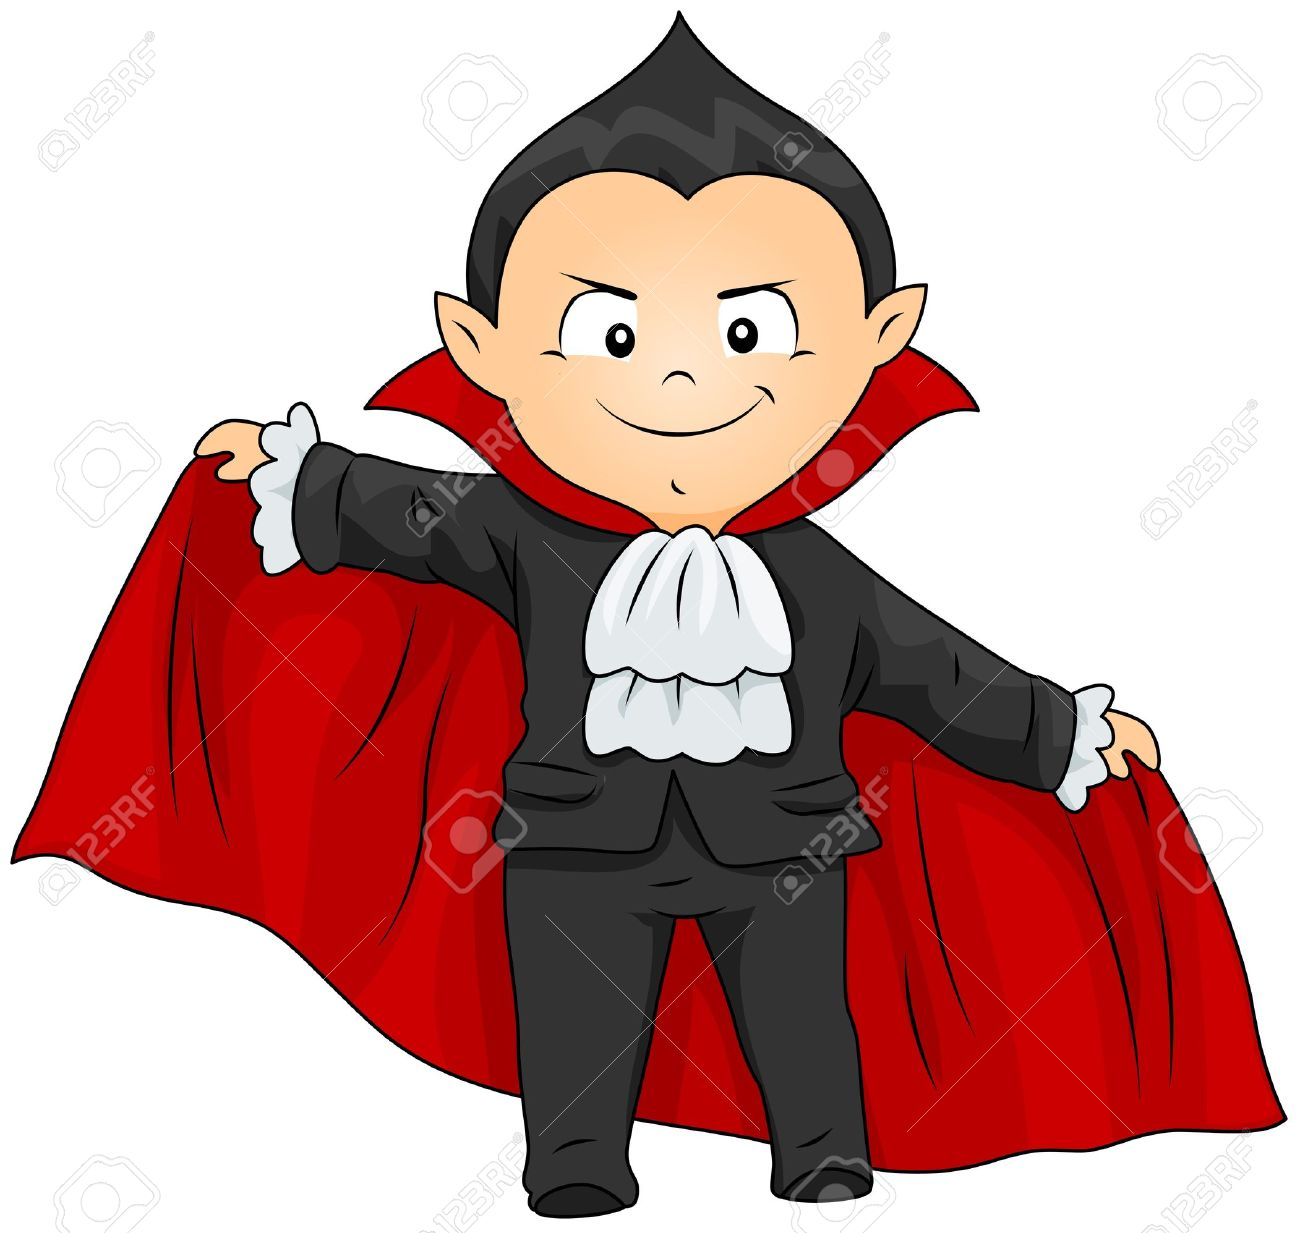 Animated vampire clipart.